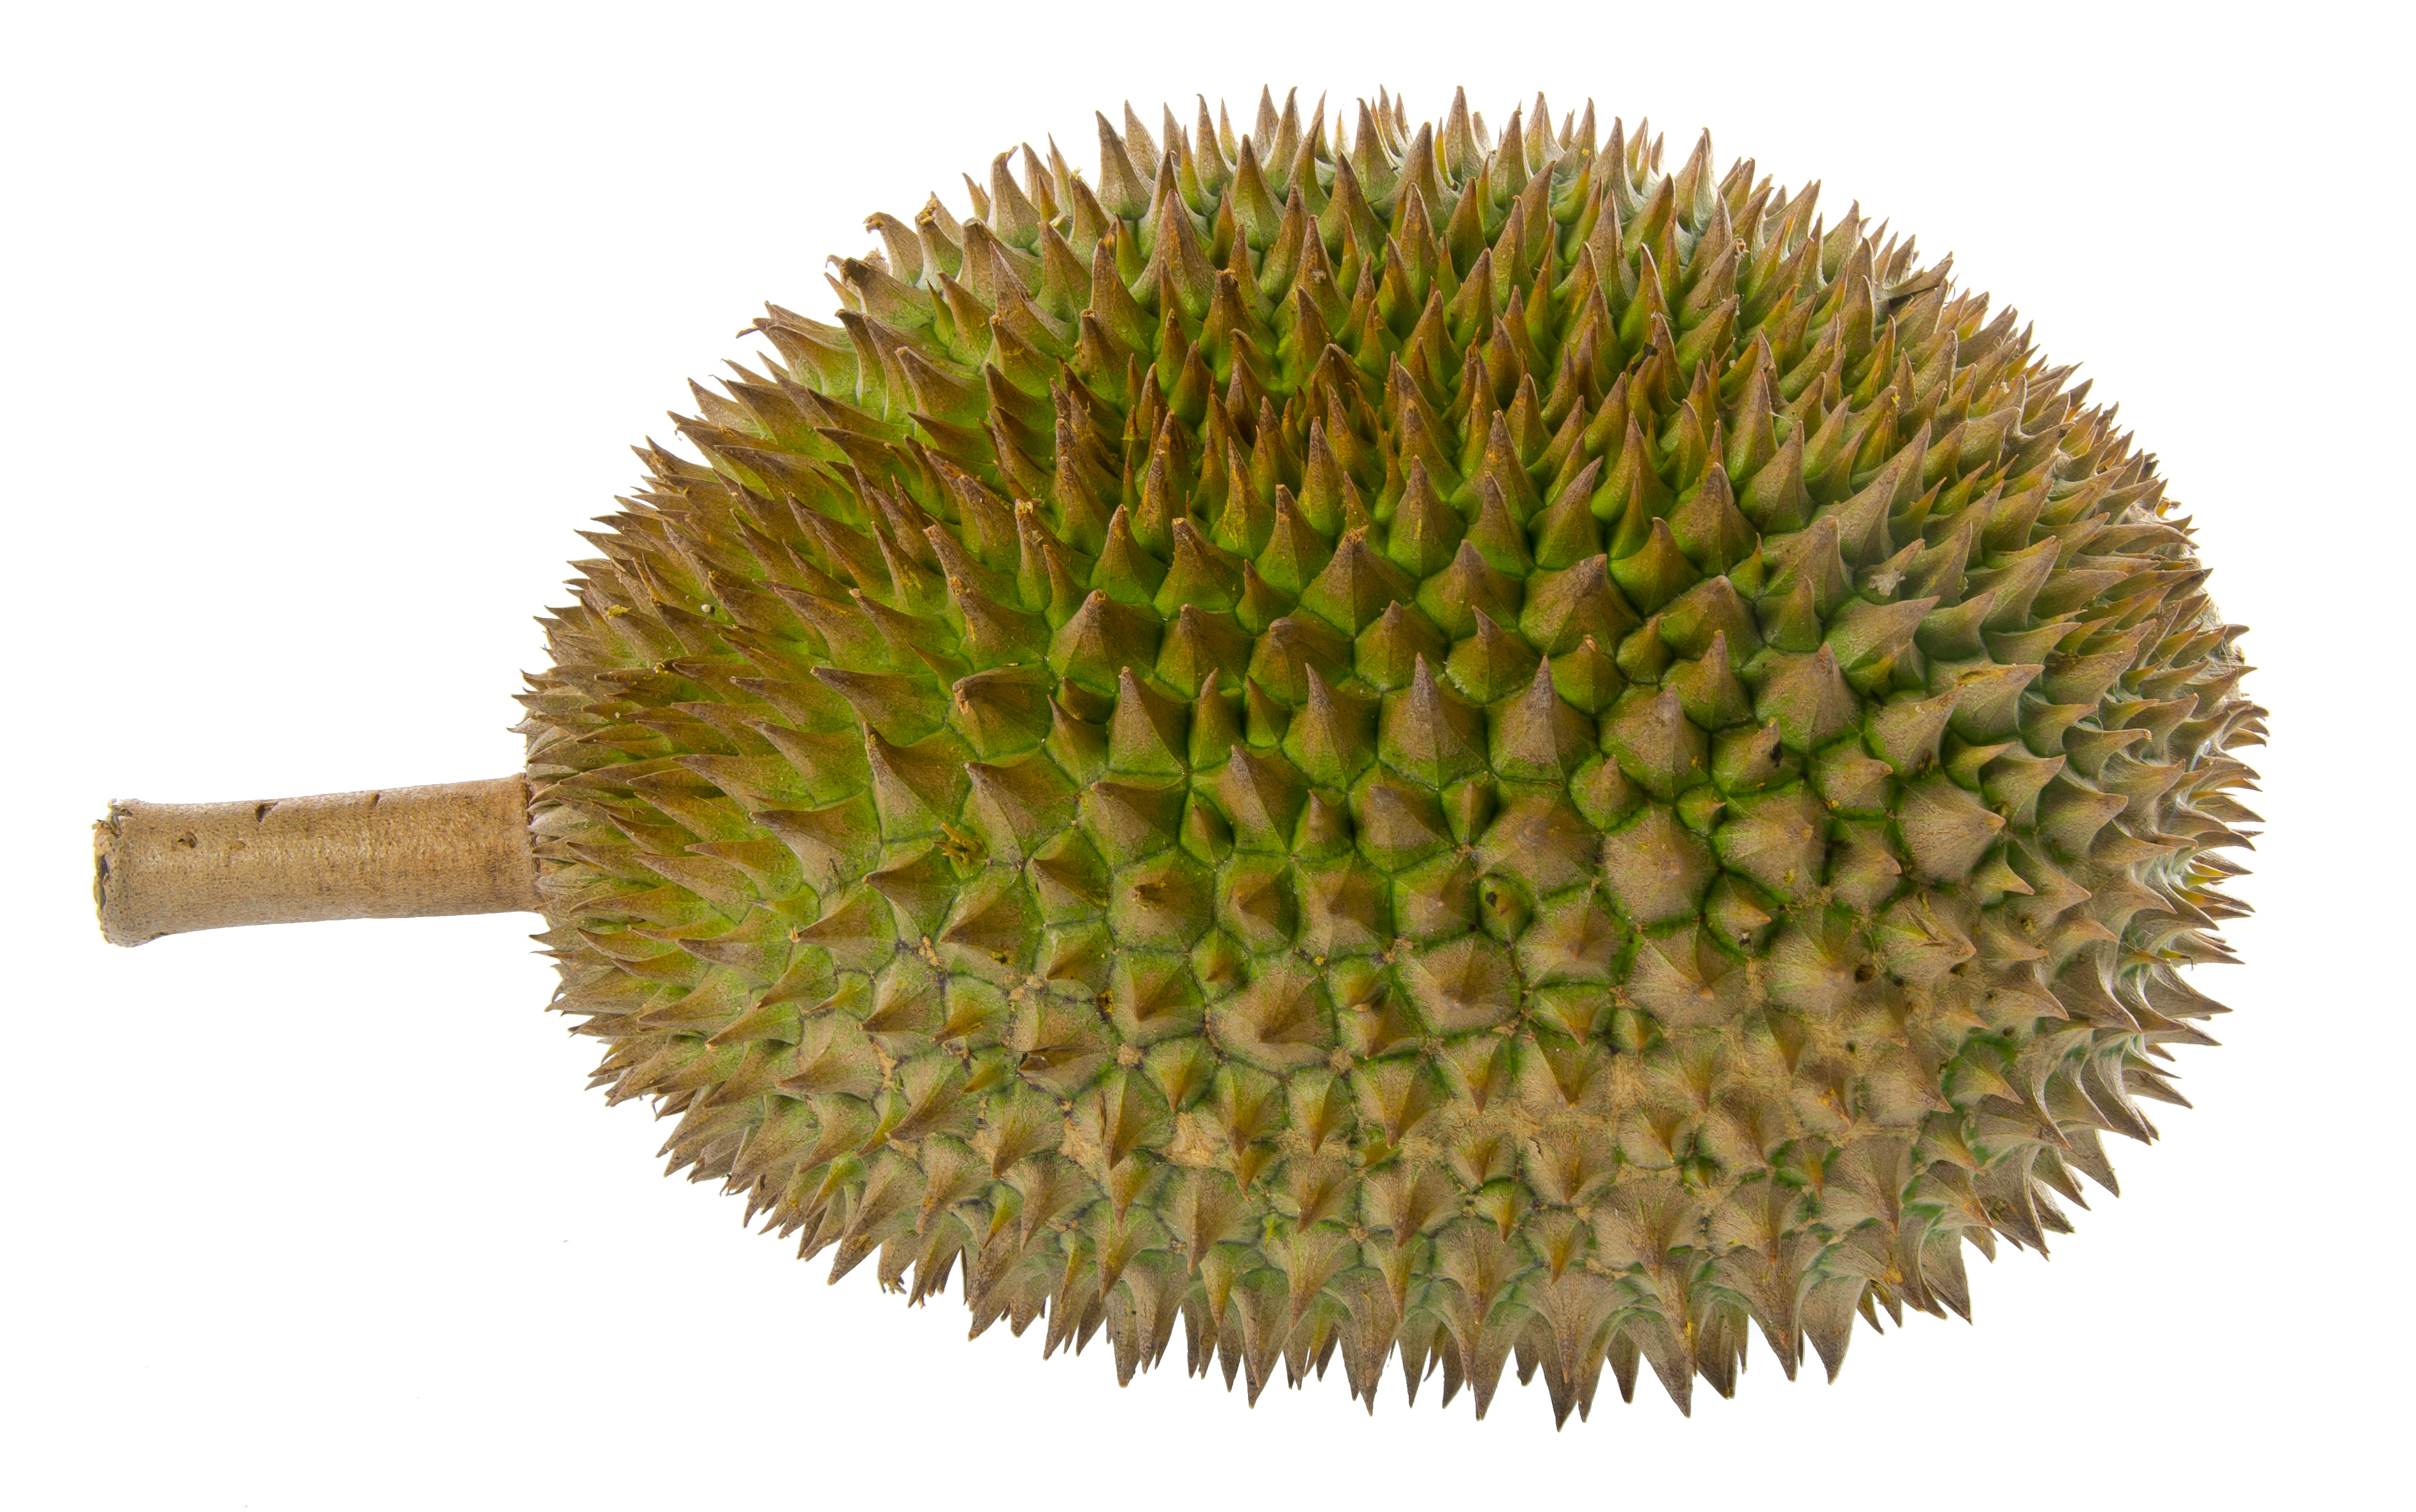 can fruit provoke  the dizzying durian latitudes hang in there clip art smiley face hang in there clip art dogs